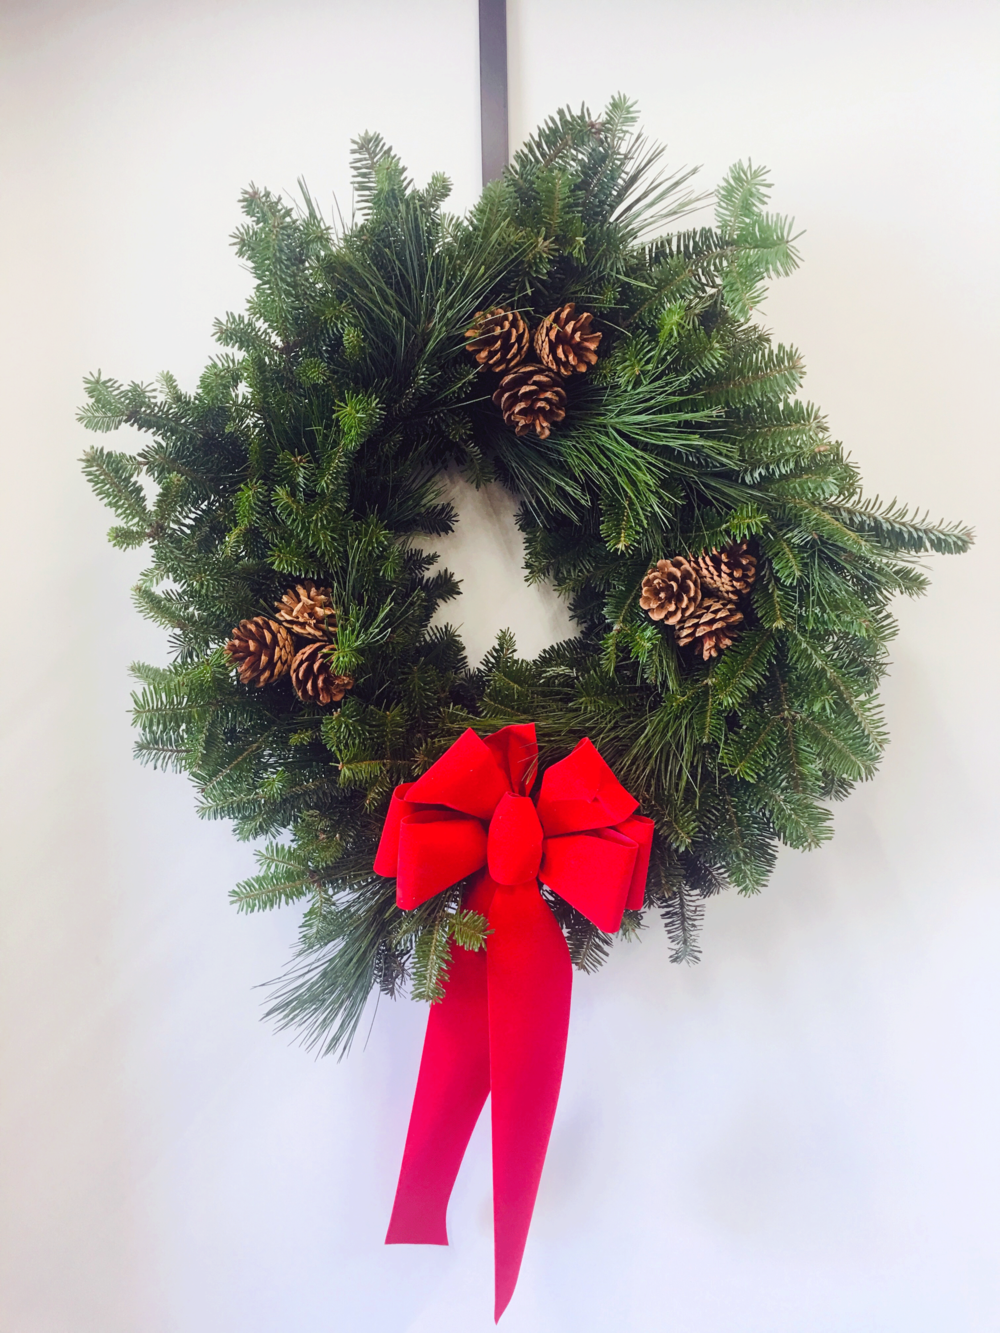 A-WREATH-A FRANKLIN - small: $30 | large: $35